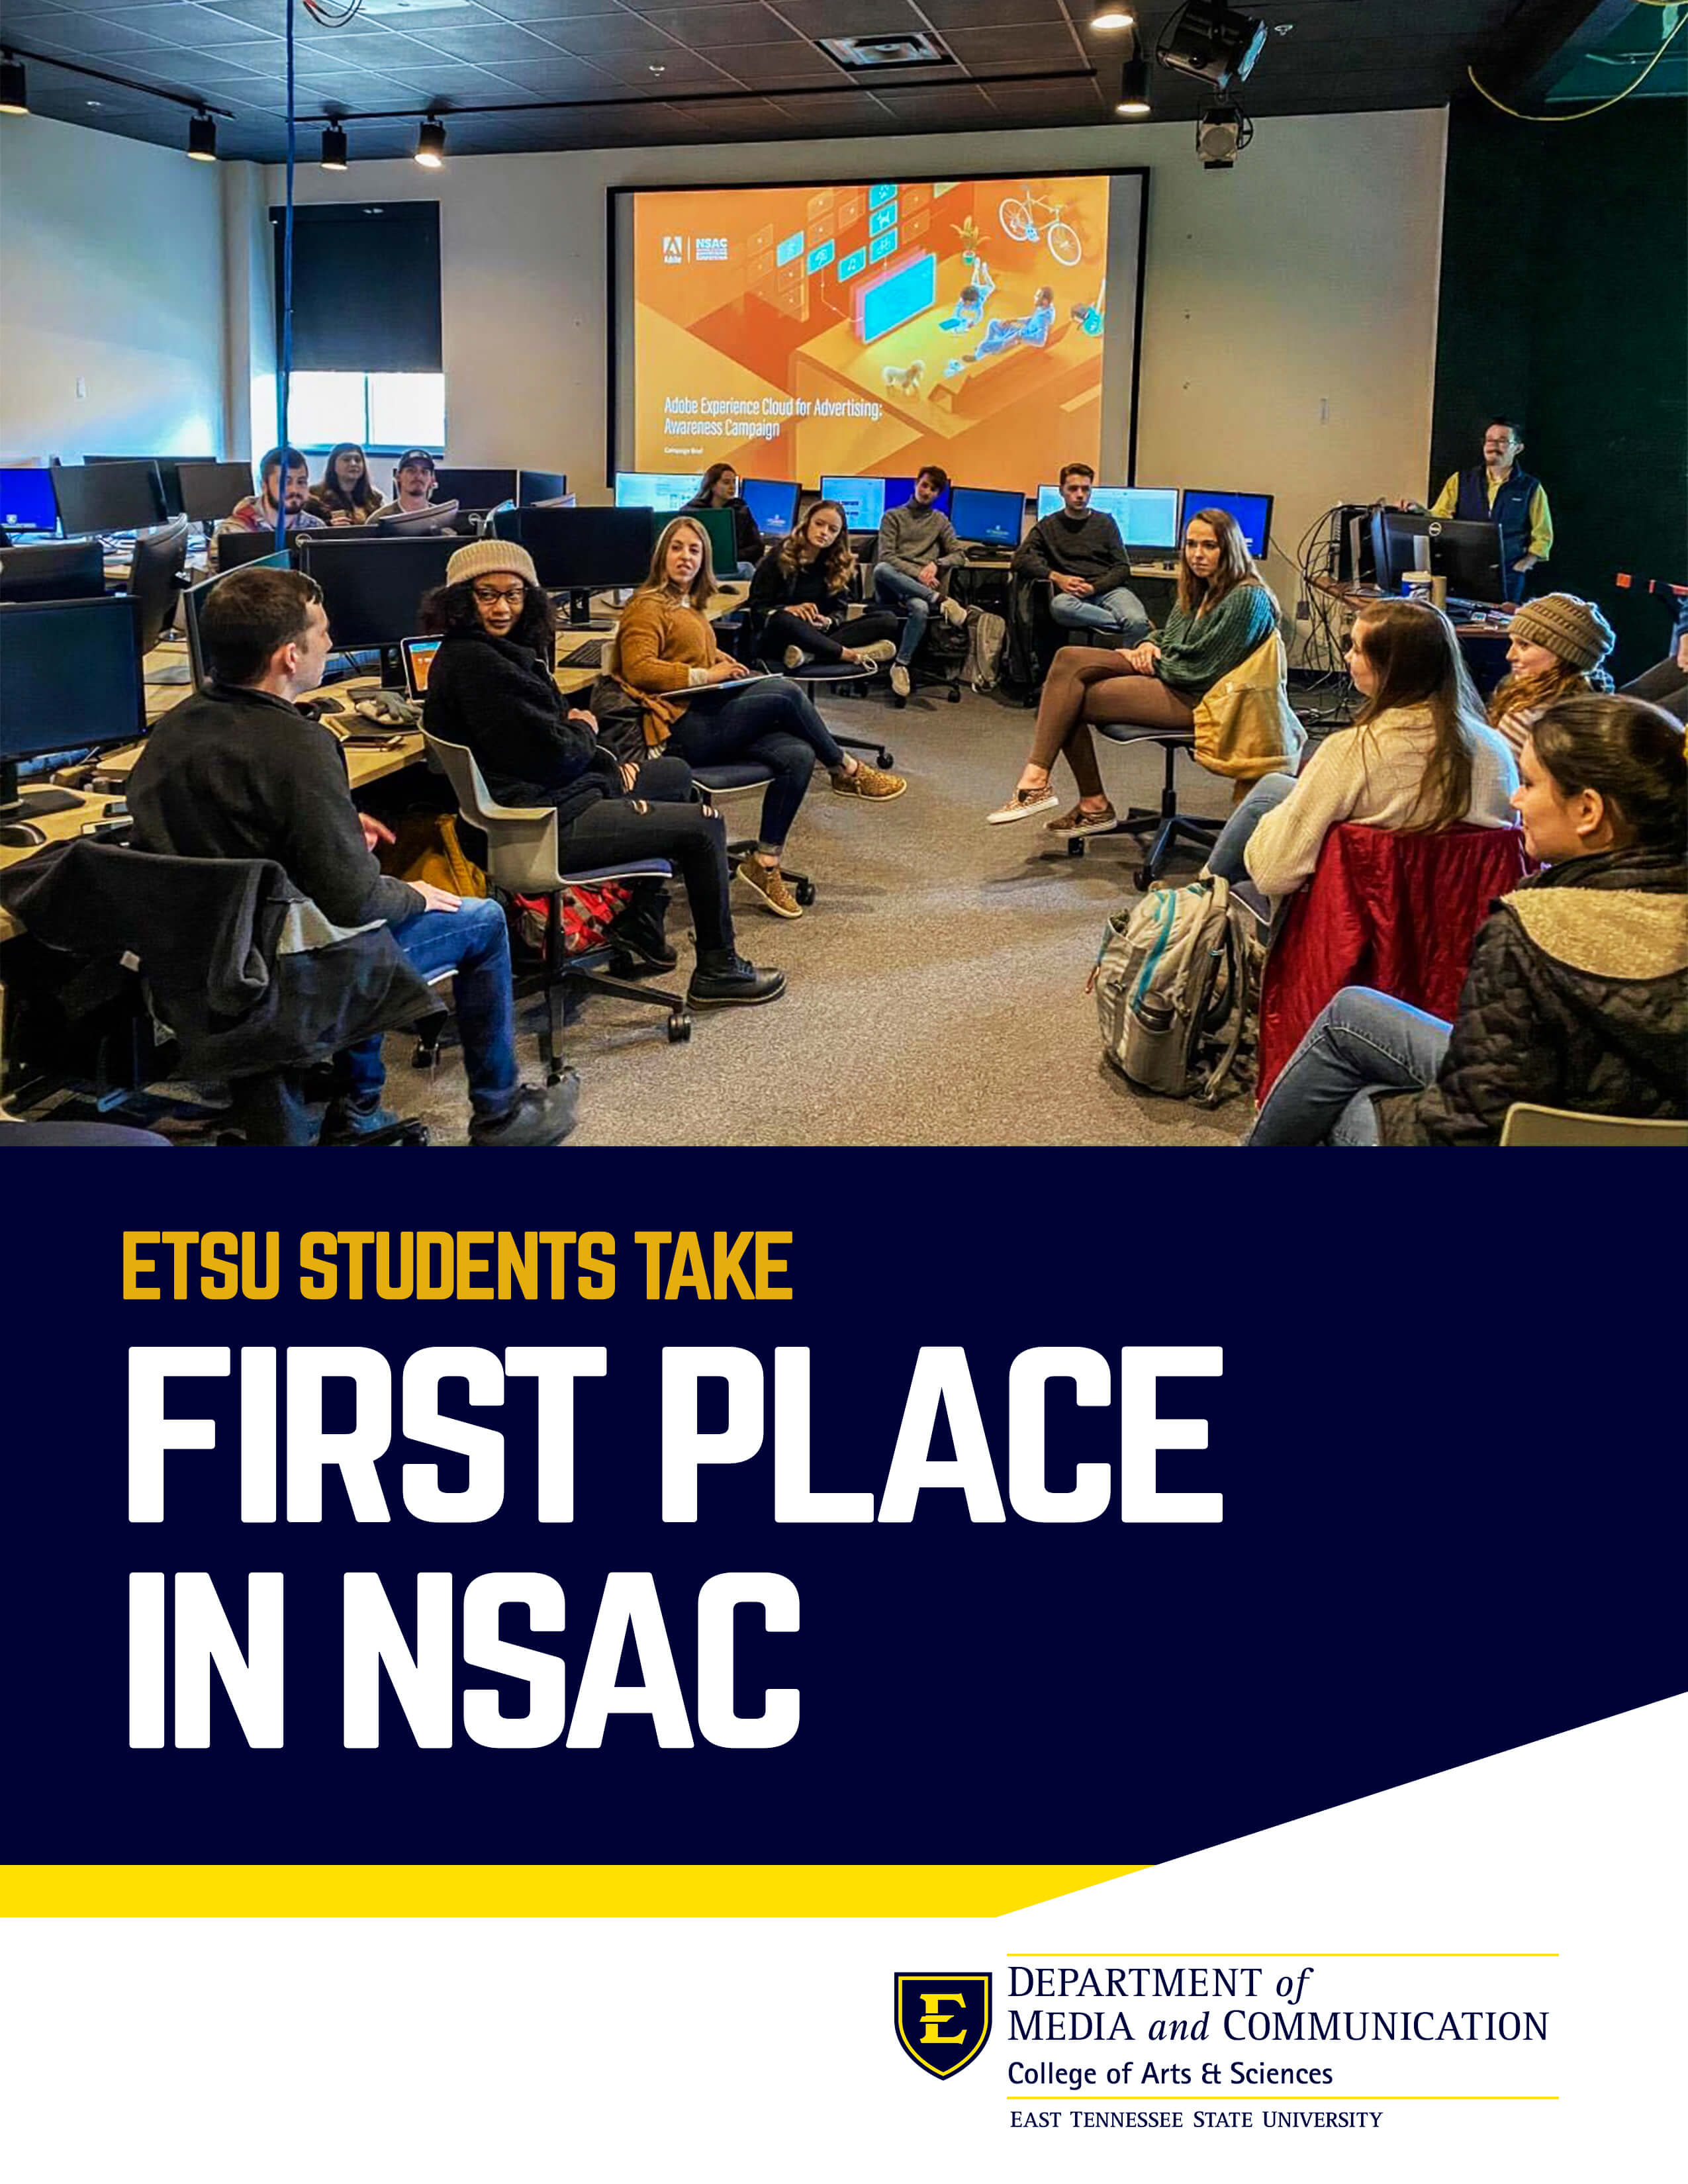 decorative image for ETSU at the National Student Advertising Competition